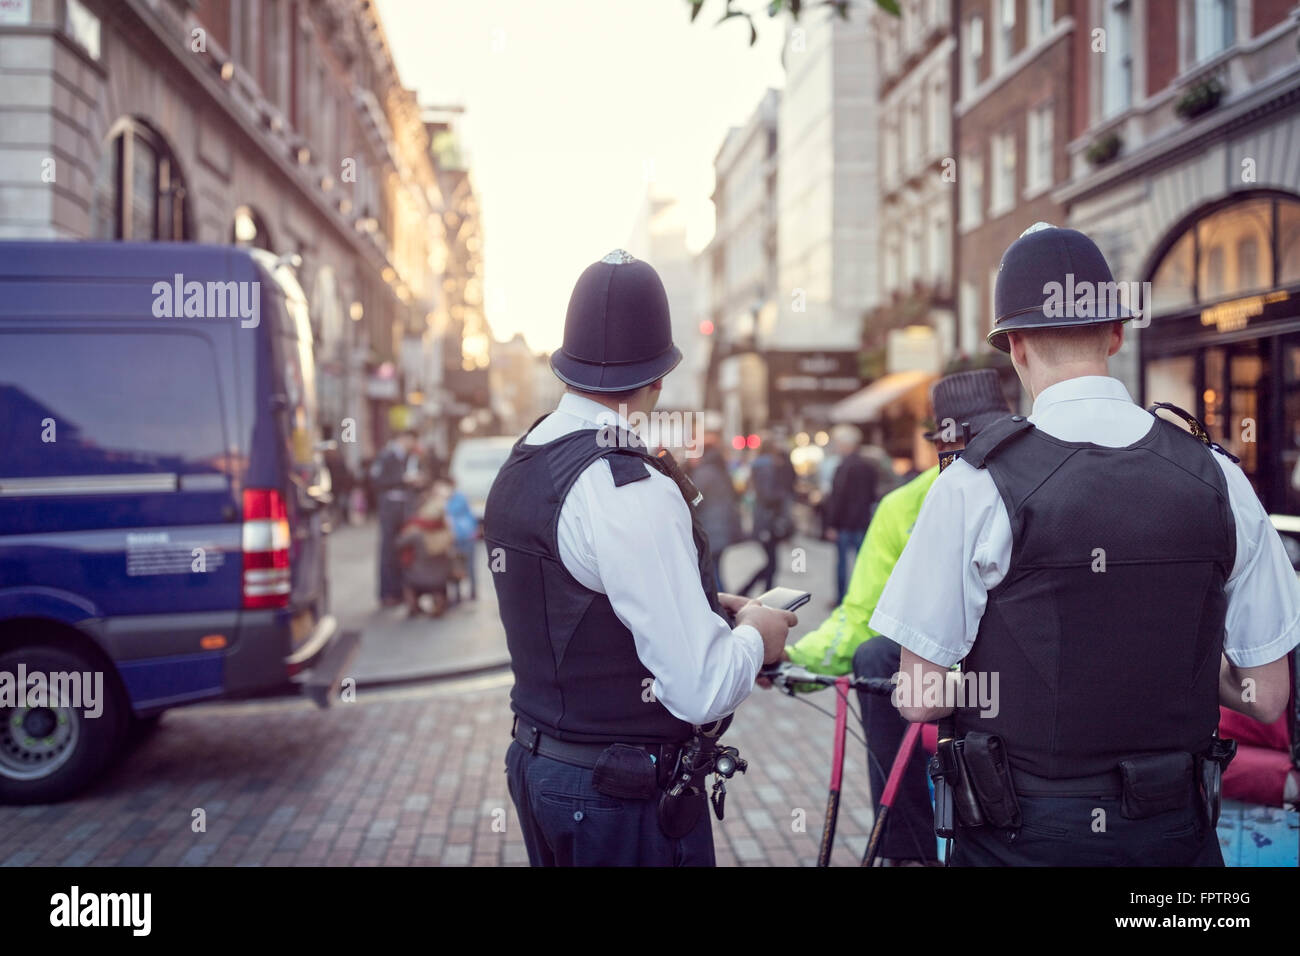 British police officers in helmets policing London streets - Stock Image